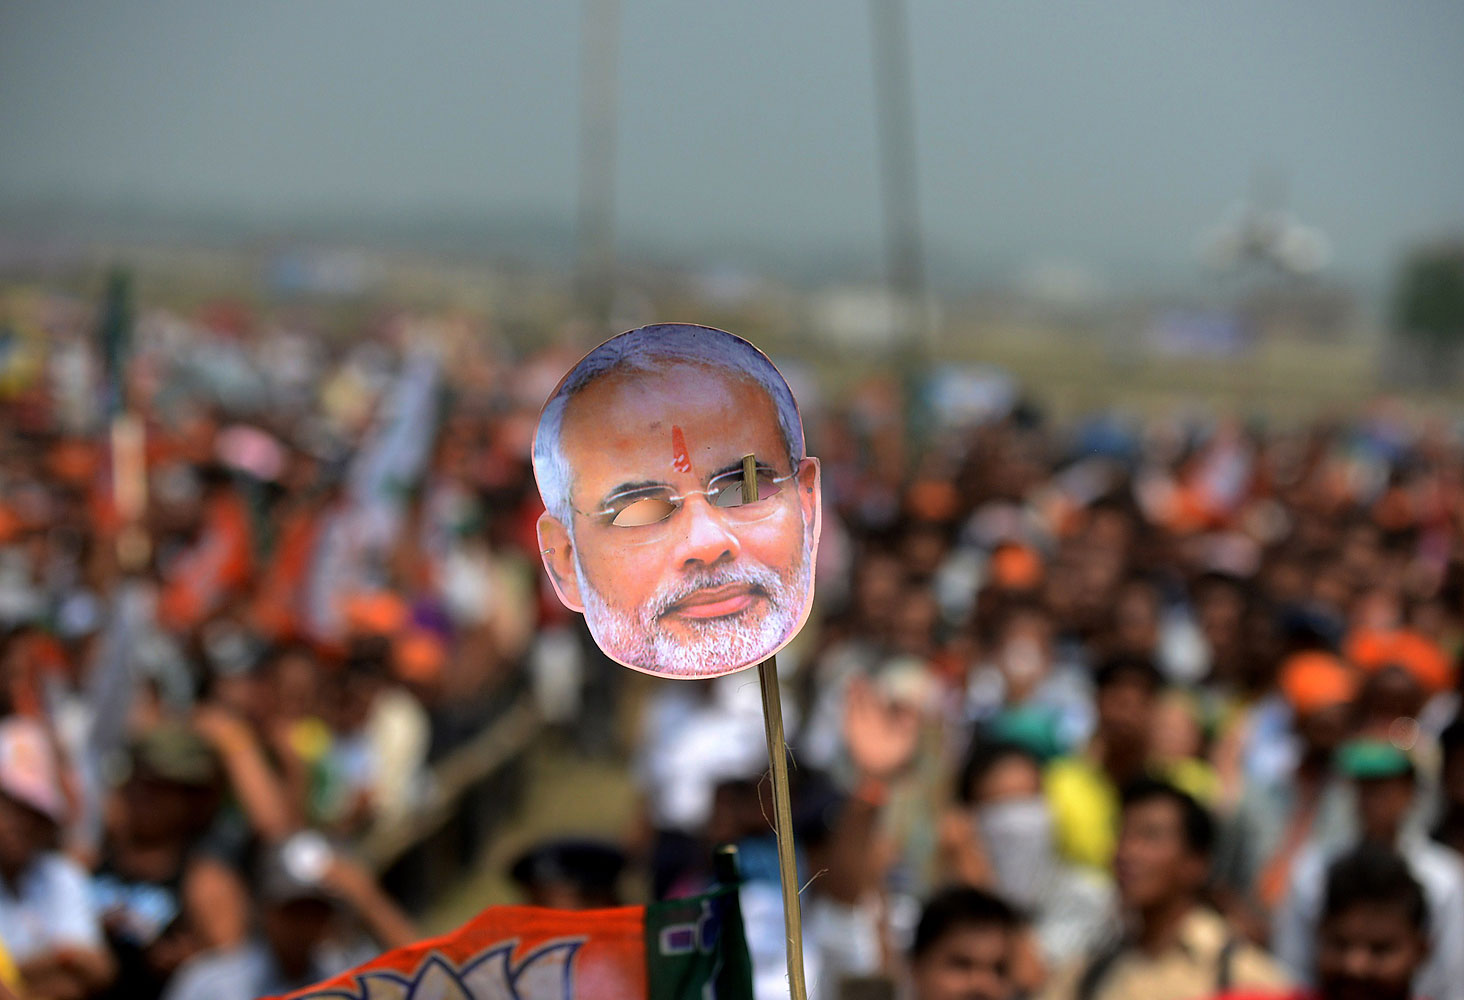 An Indian supporter holds a mask of Chief Minister of the western Gujarat state and Bharatiya Janata Party Prime Ministerial candidate, Narendra Modi during an election campaign rally for the support of BJP candidate for Darjeeling constituency, S S Ahluwalia on the outskirts of Siliguri on April 10, 2014.